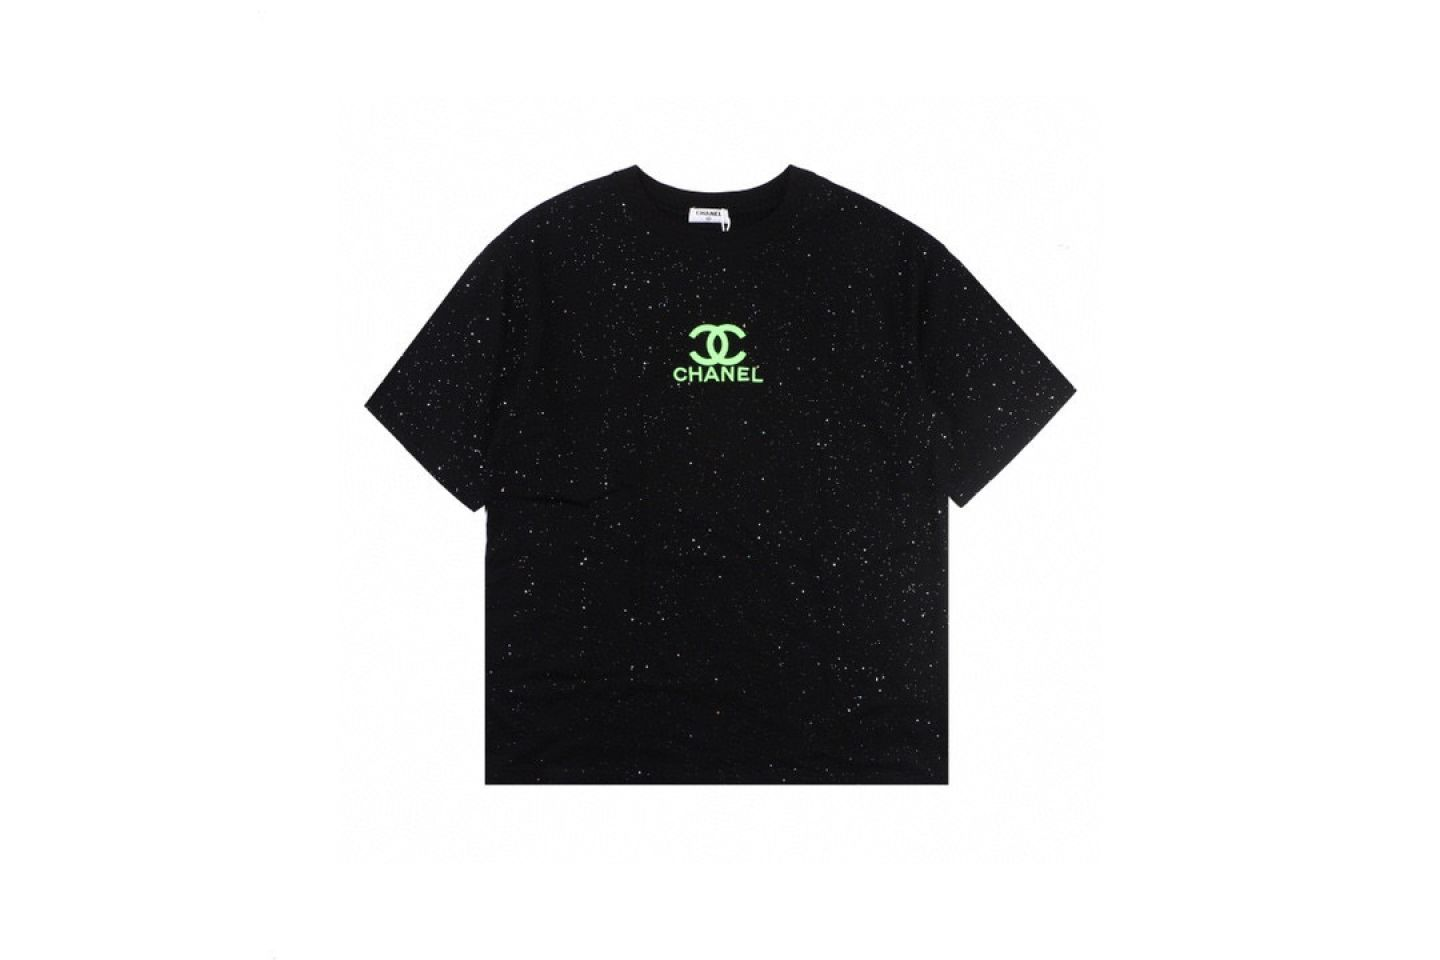 Shirt CHANEL20Ss starry green fluorescent embroidery short sleeve 1 chanel20ss_starry_green_fluorescent_embroidery_short_sleeve__1